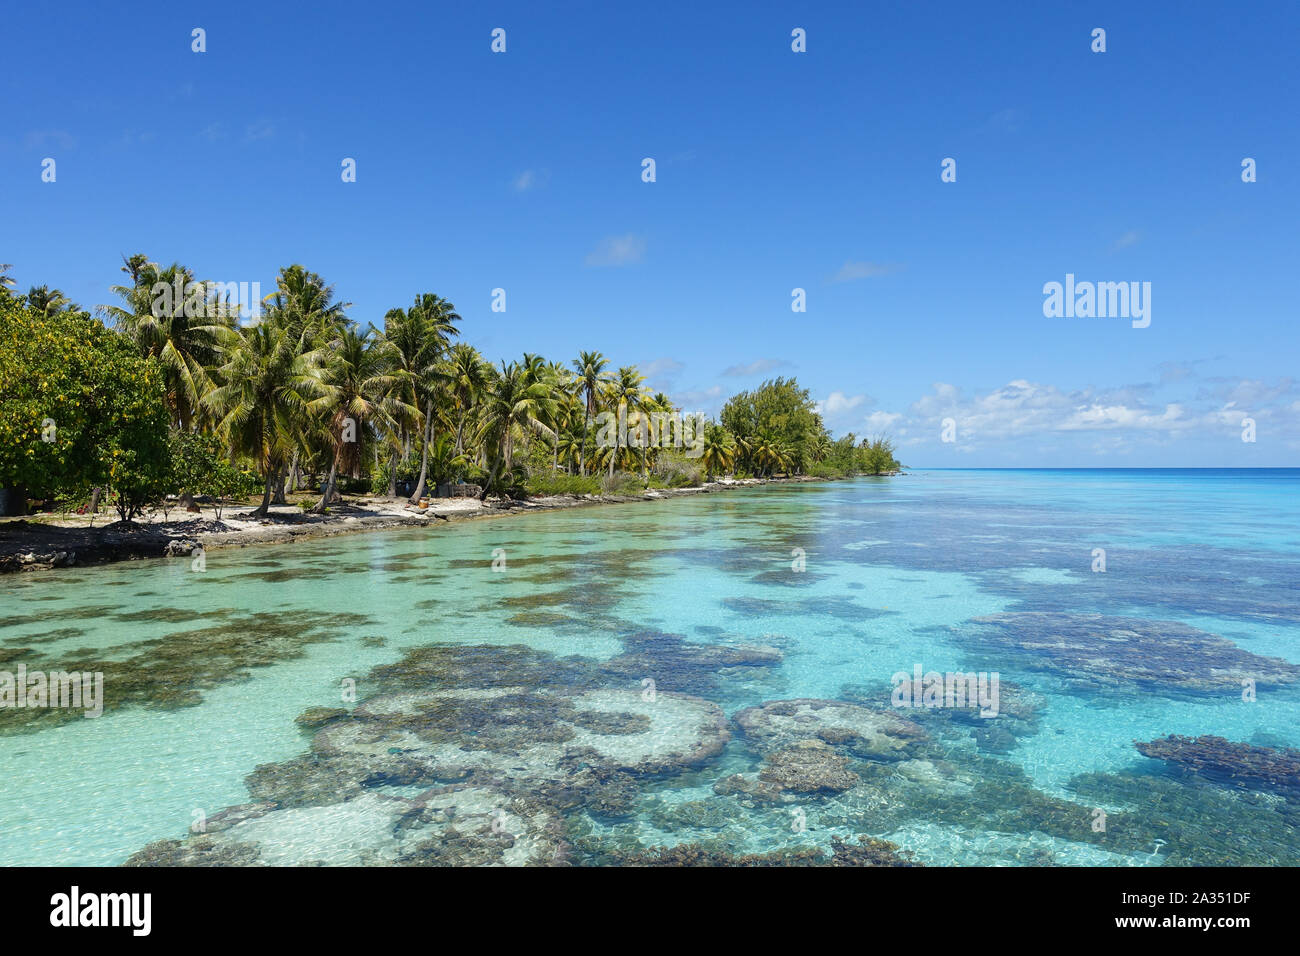 Palm trees line a sandy beach next to a tropical lagoon filled with coral under a bright blue sky Stock Photo